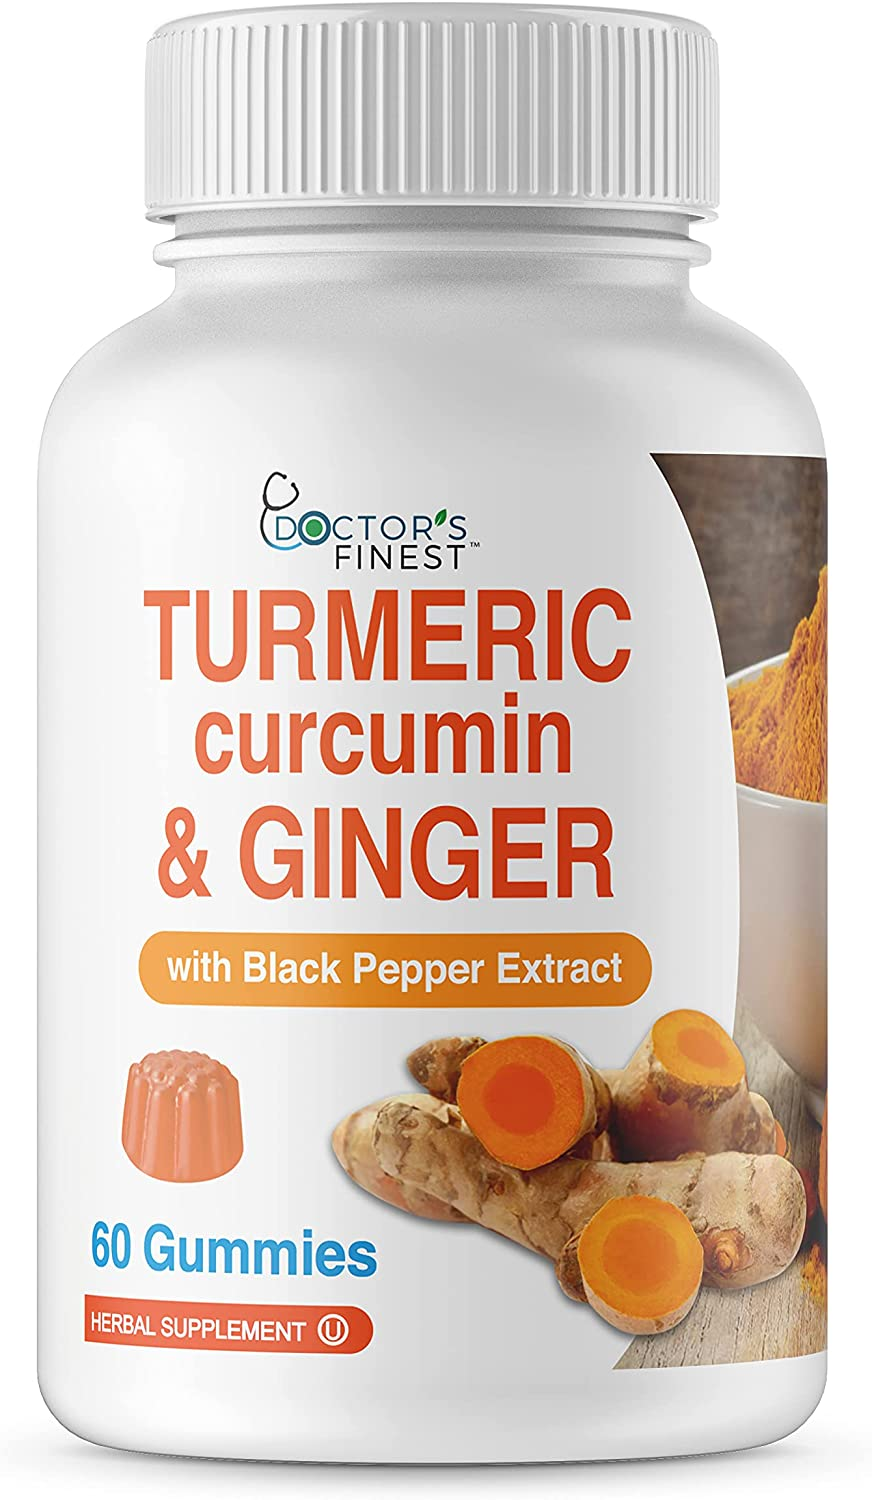 Doctors Finest Turmeric Curcumin with Pepper Ginger Manufacturer Chicago Mall direct delivery Black Extr